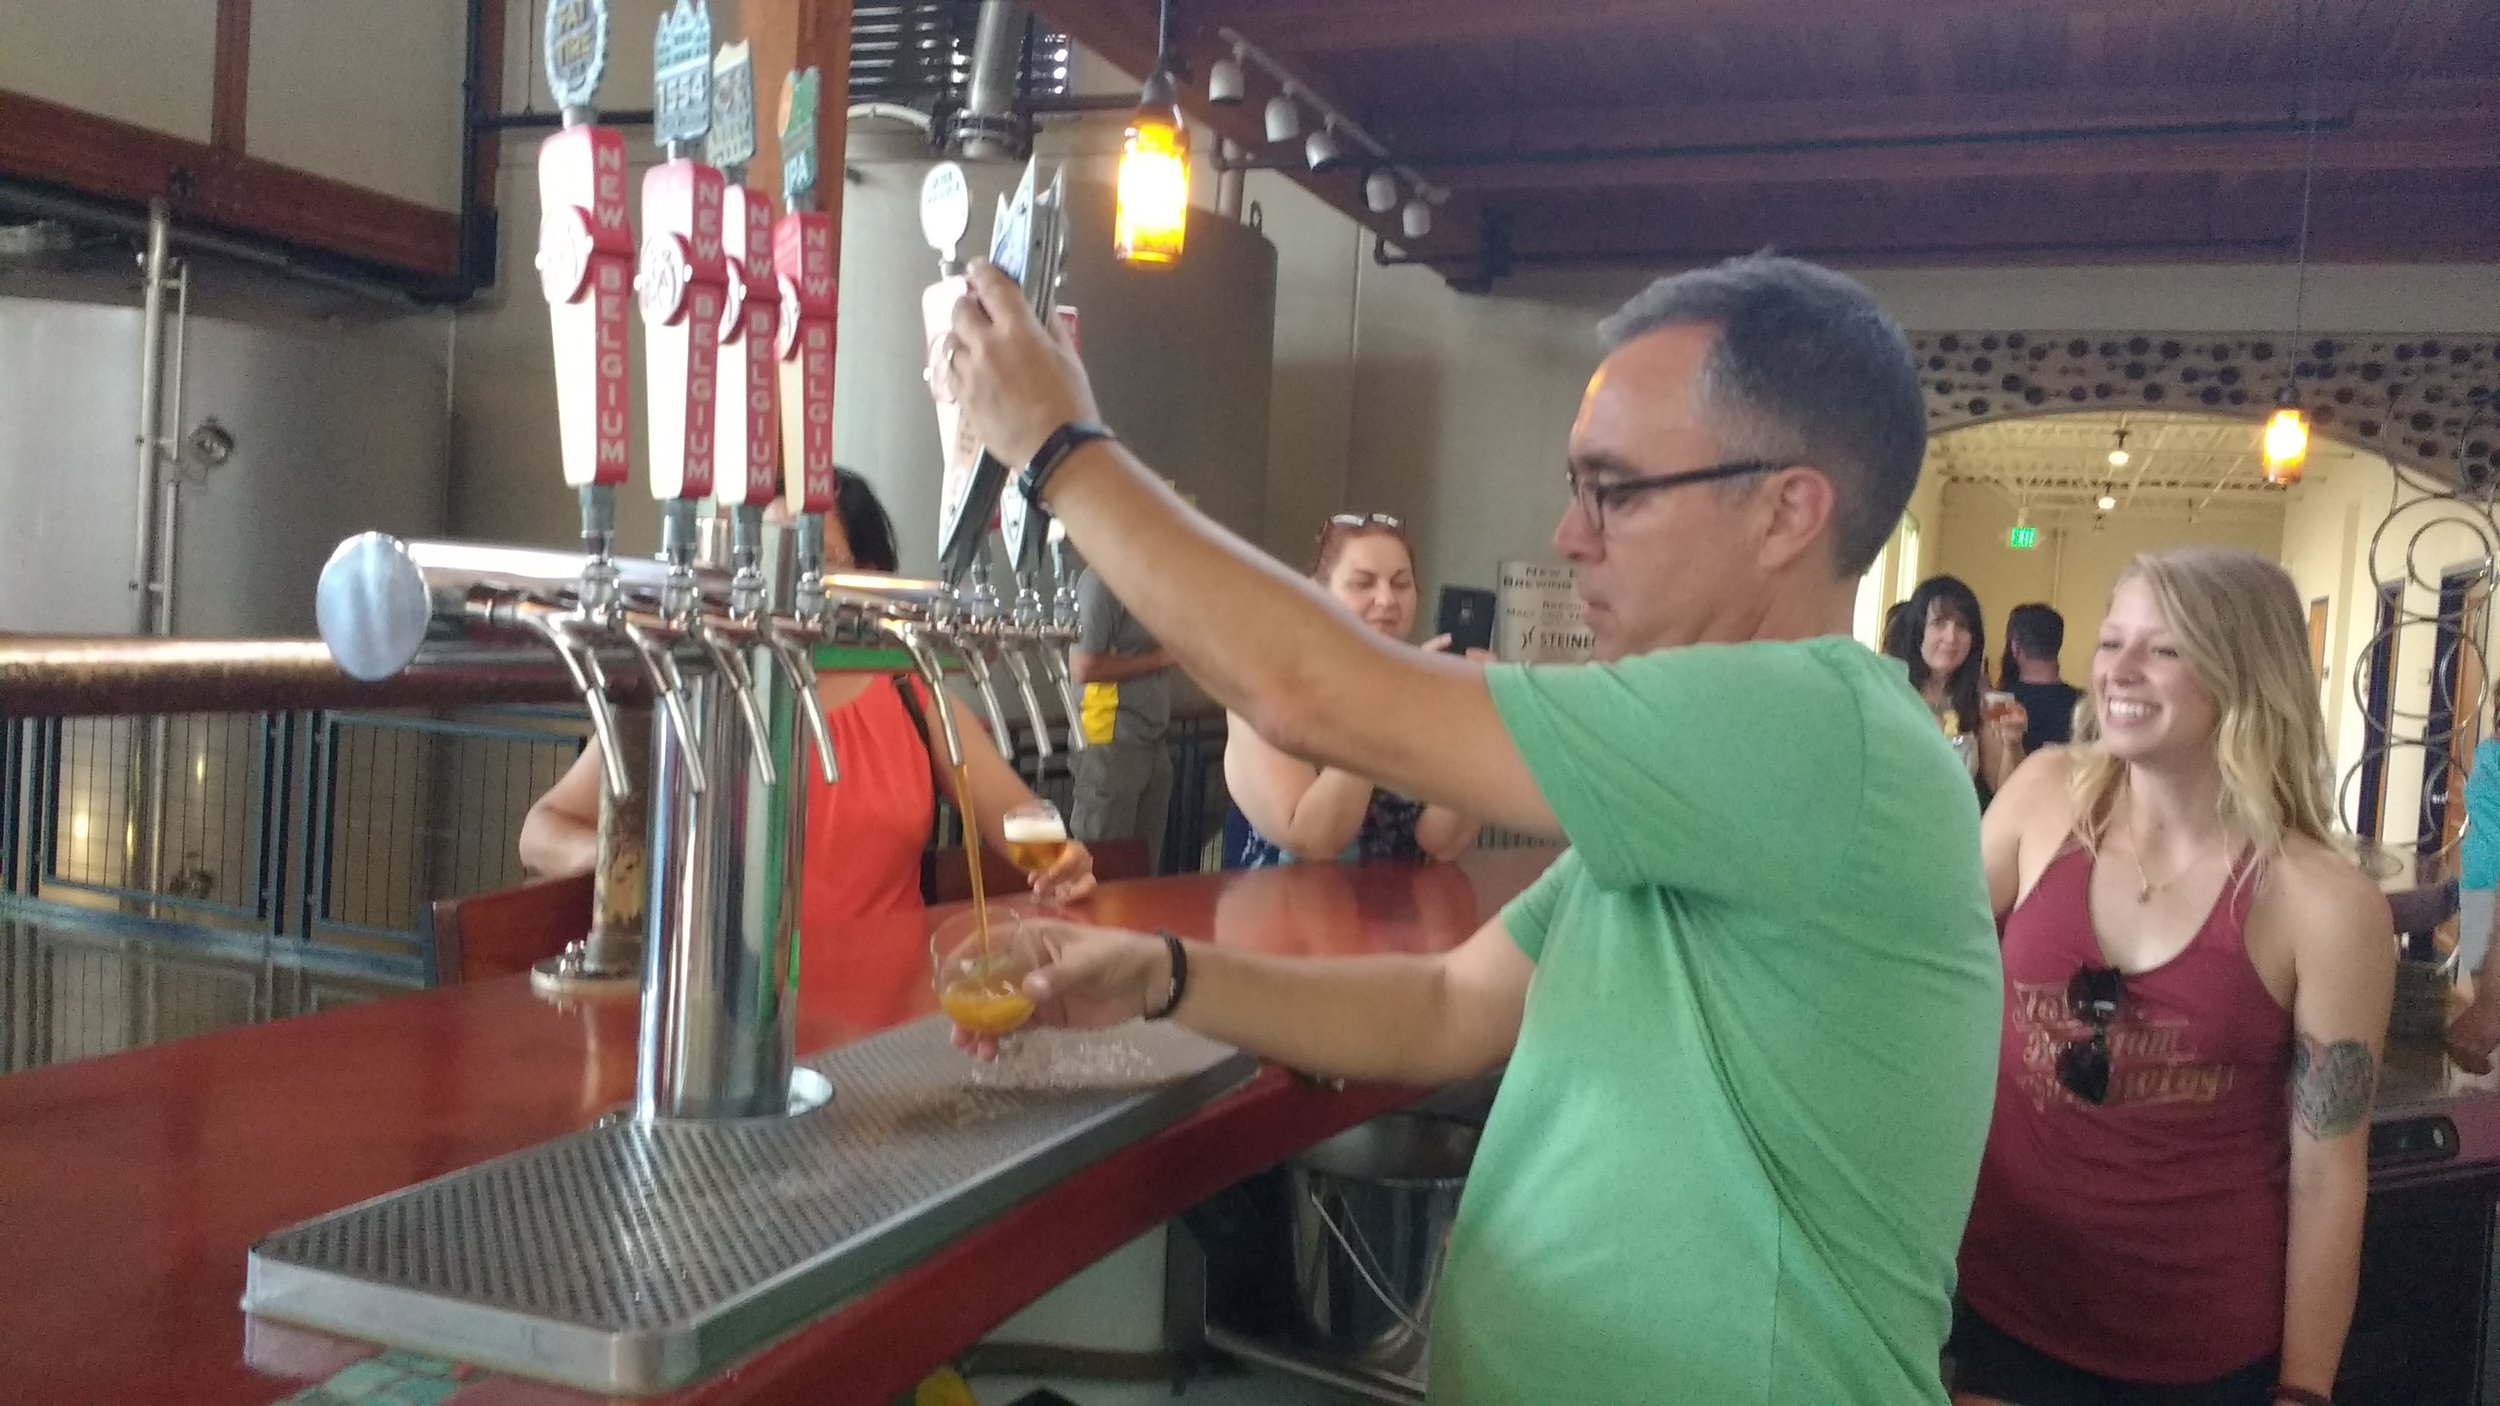 Iain pours himself a beer during the New Belgium Tour